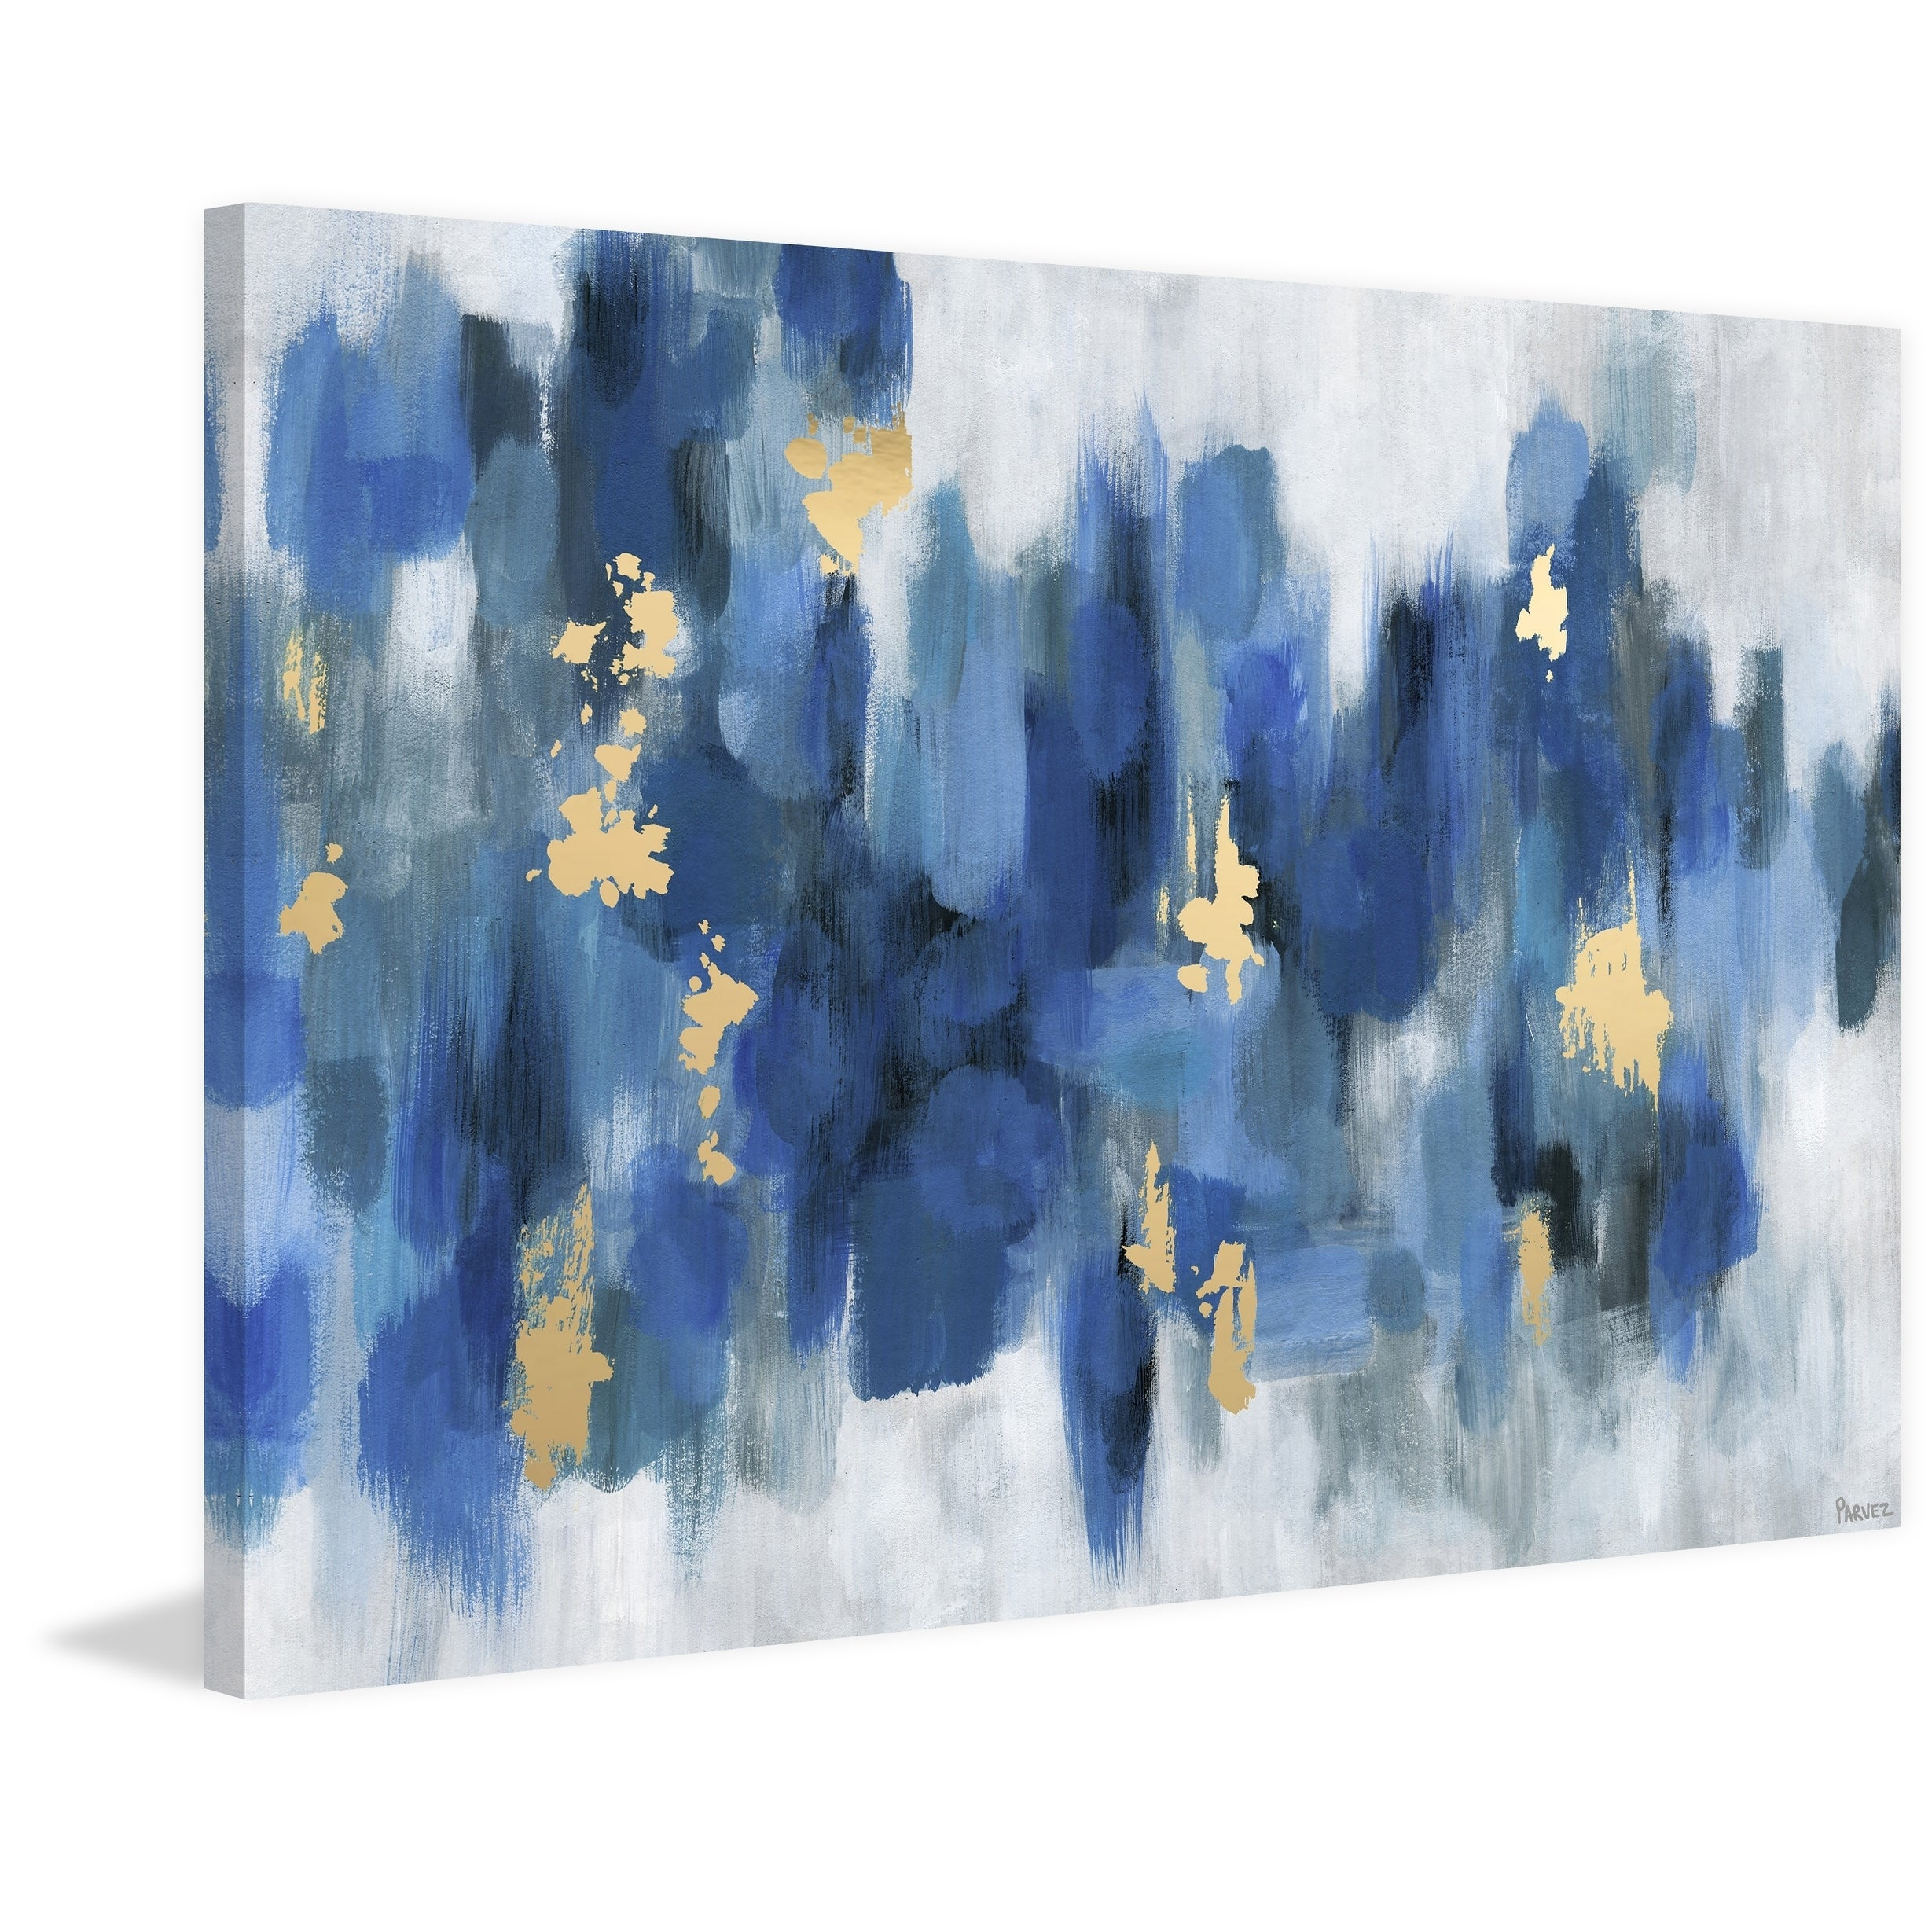 shop porch den emmaus blurry blue flowers ii wrapped canvas print overstock 26640787 porch den emmaus blurry blue flowers ii wrapped canvas print